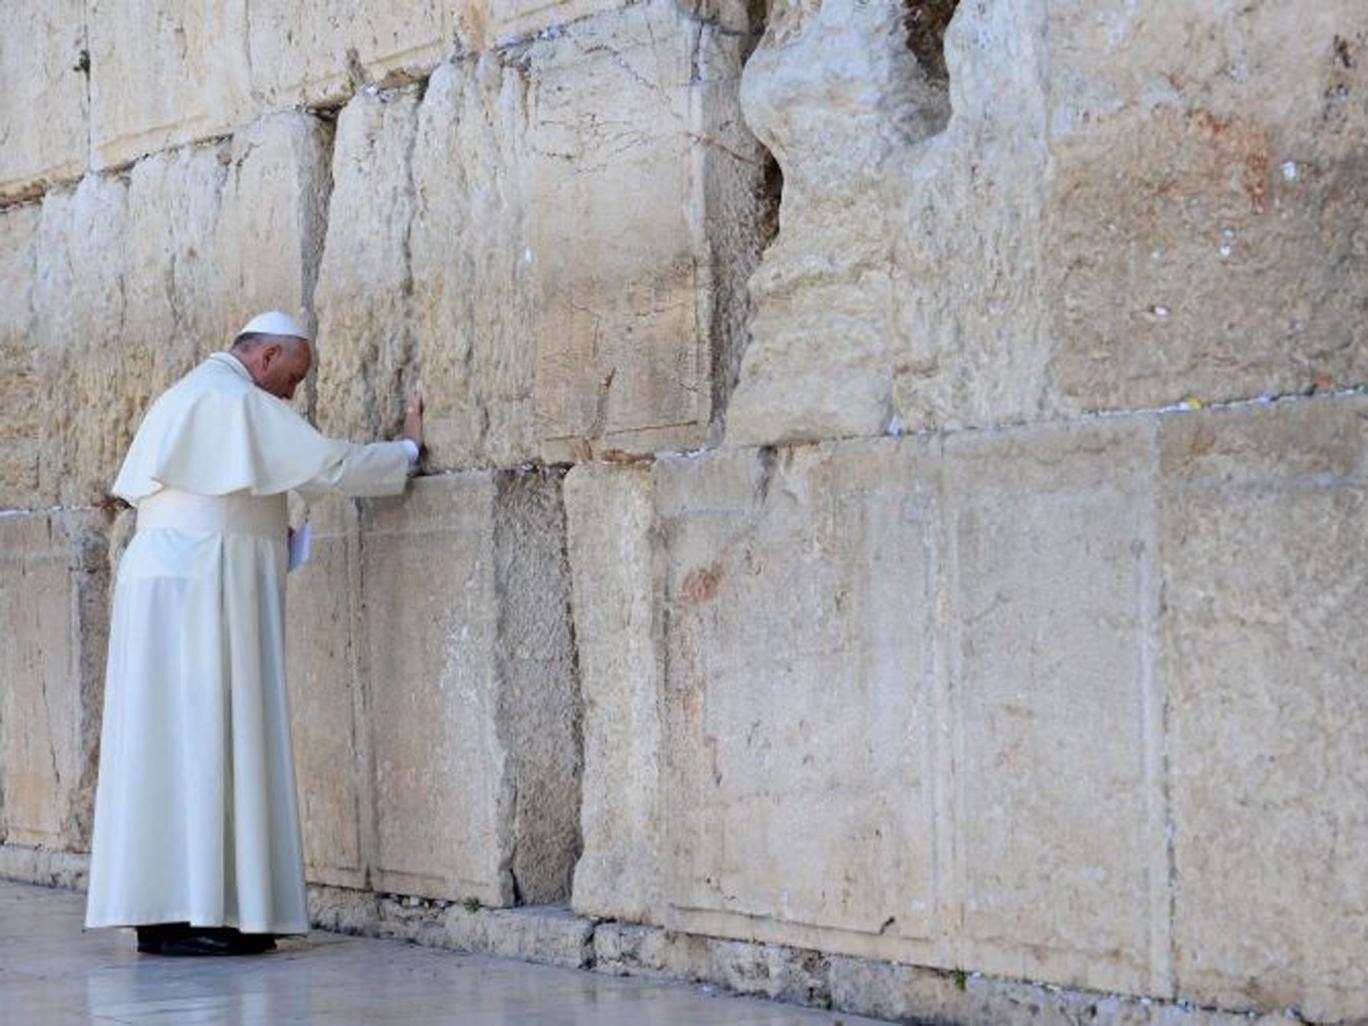 Pope Francis visiting the Western Wall, Judaism's holiest site, in Jerusalem's Old City, Israel, on 26 May, 2014